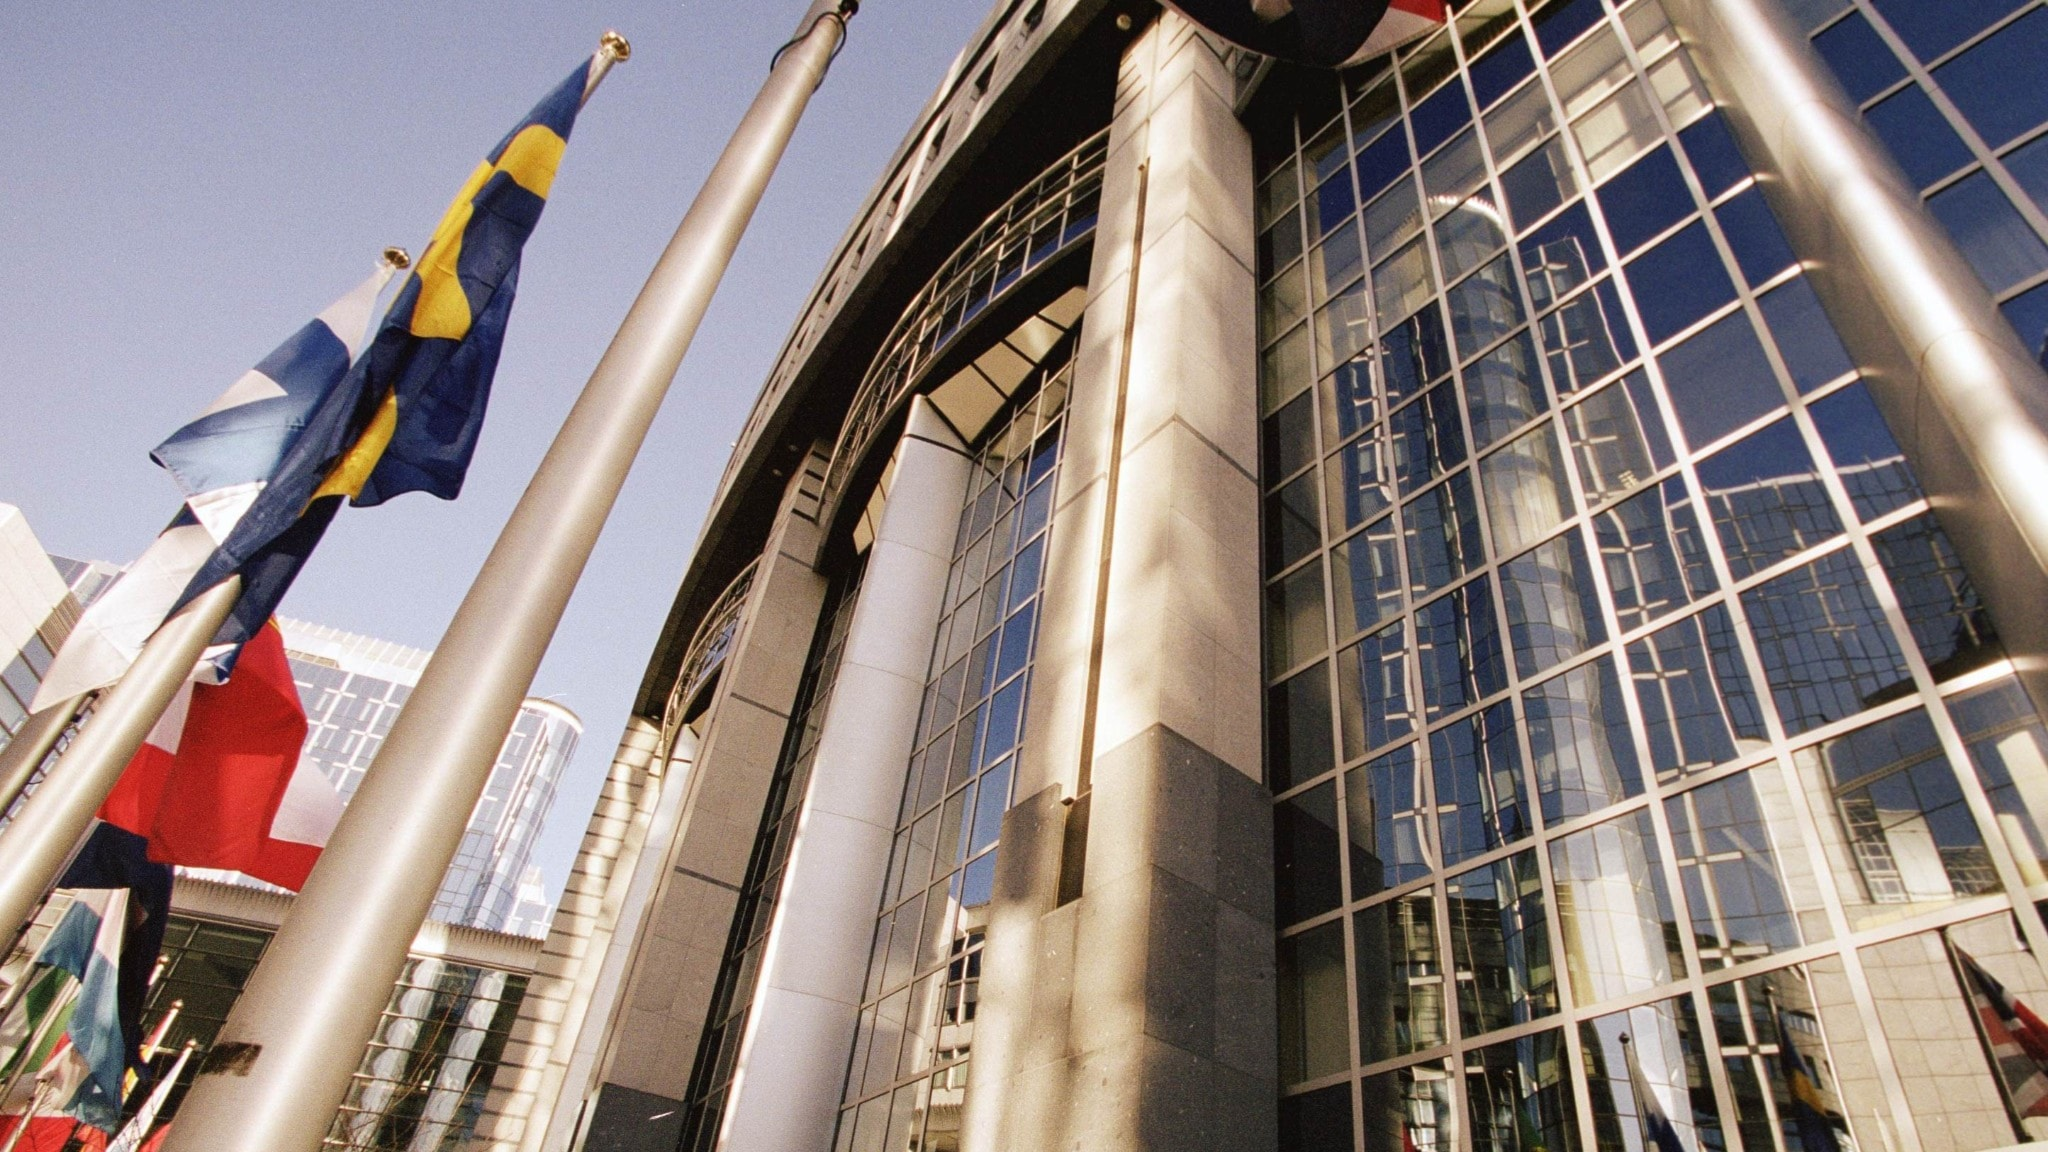 Necessary compromise or constitutional coup? Swedish MEPs on the new EU deal - Radio Sweden